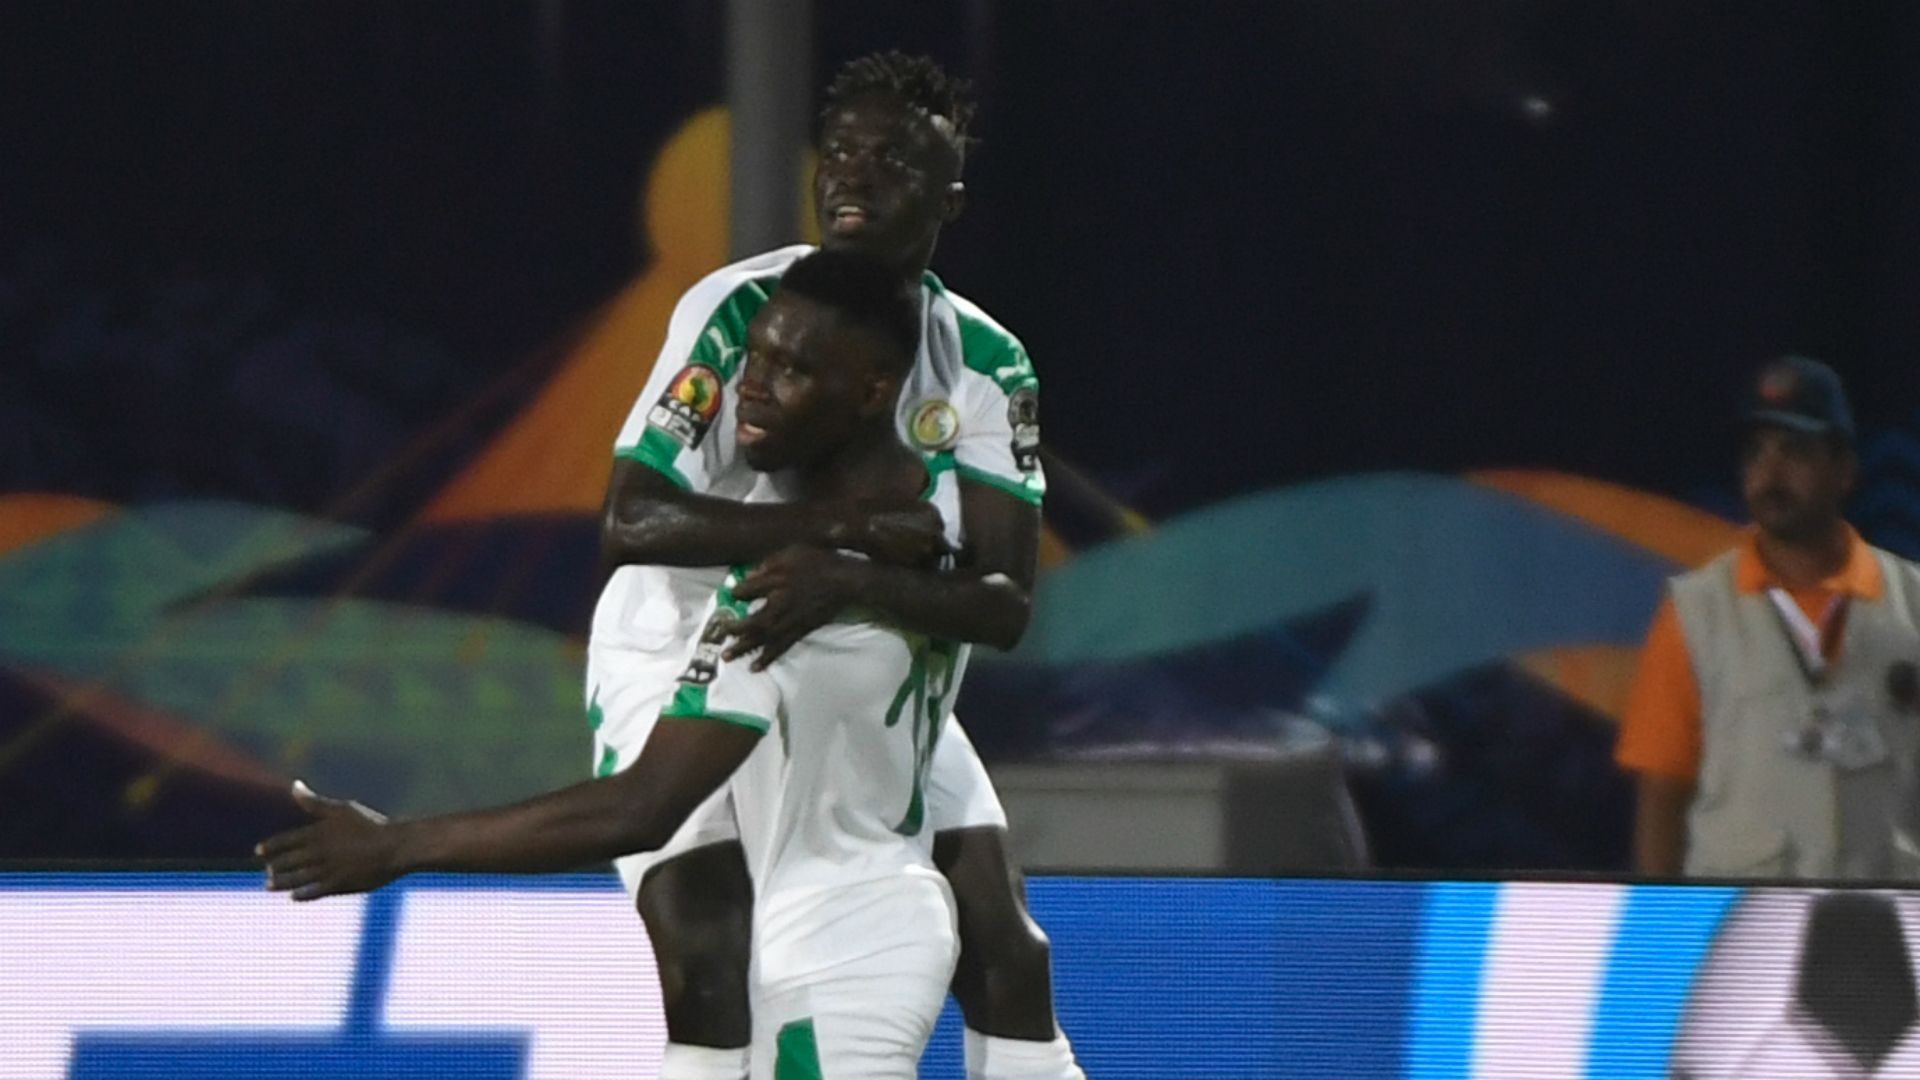 AFCON 2019: 'We're challengers, not favourites', says Senegal boss Cisse